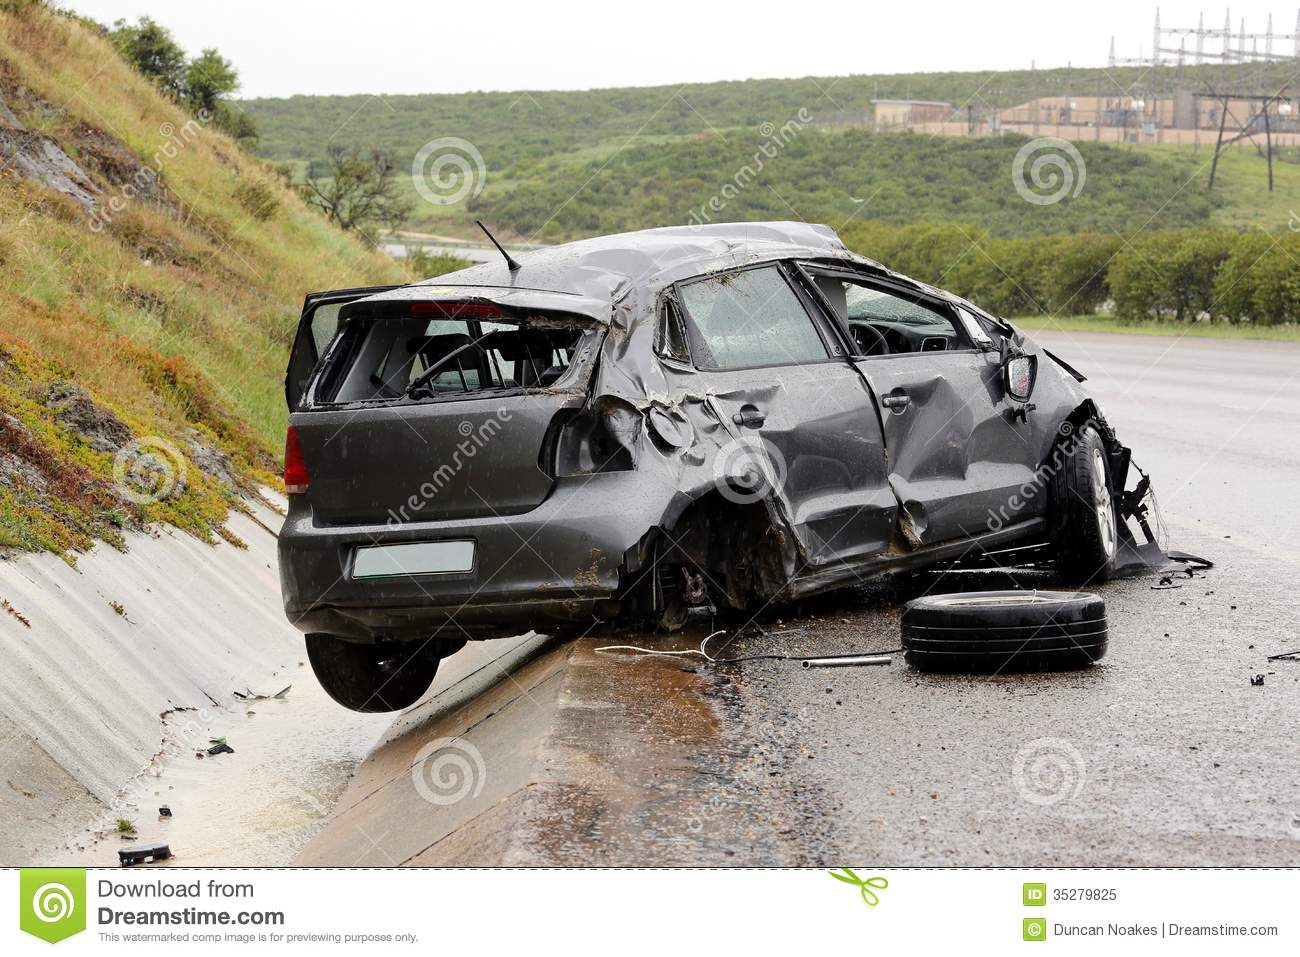 Car Accident and Wreckage stock image. Image of crushed - 35279825